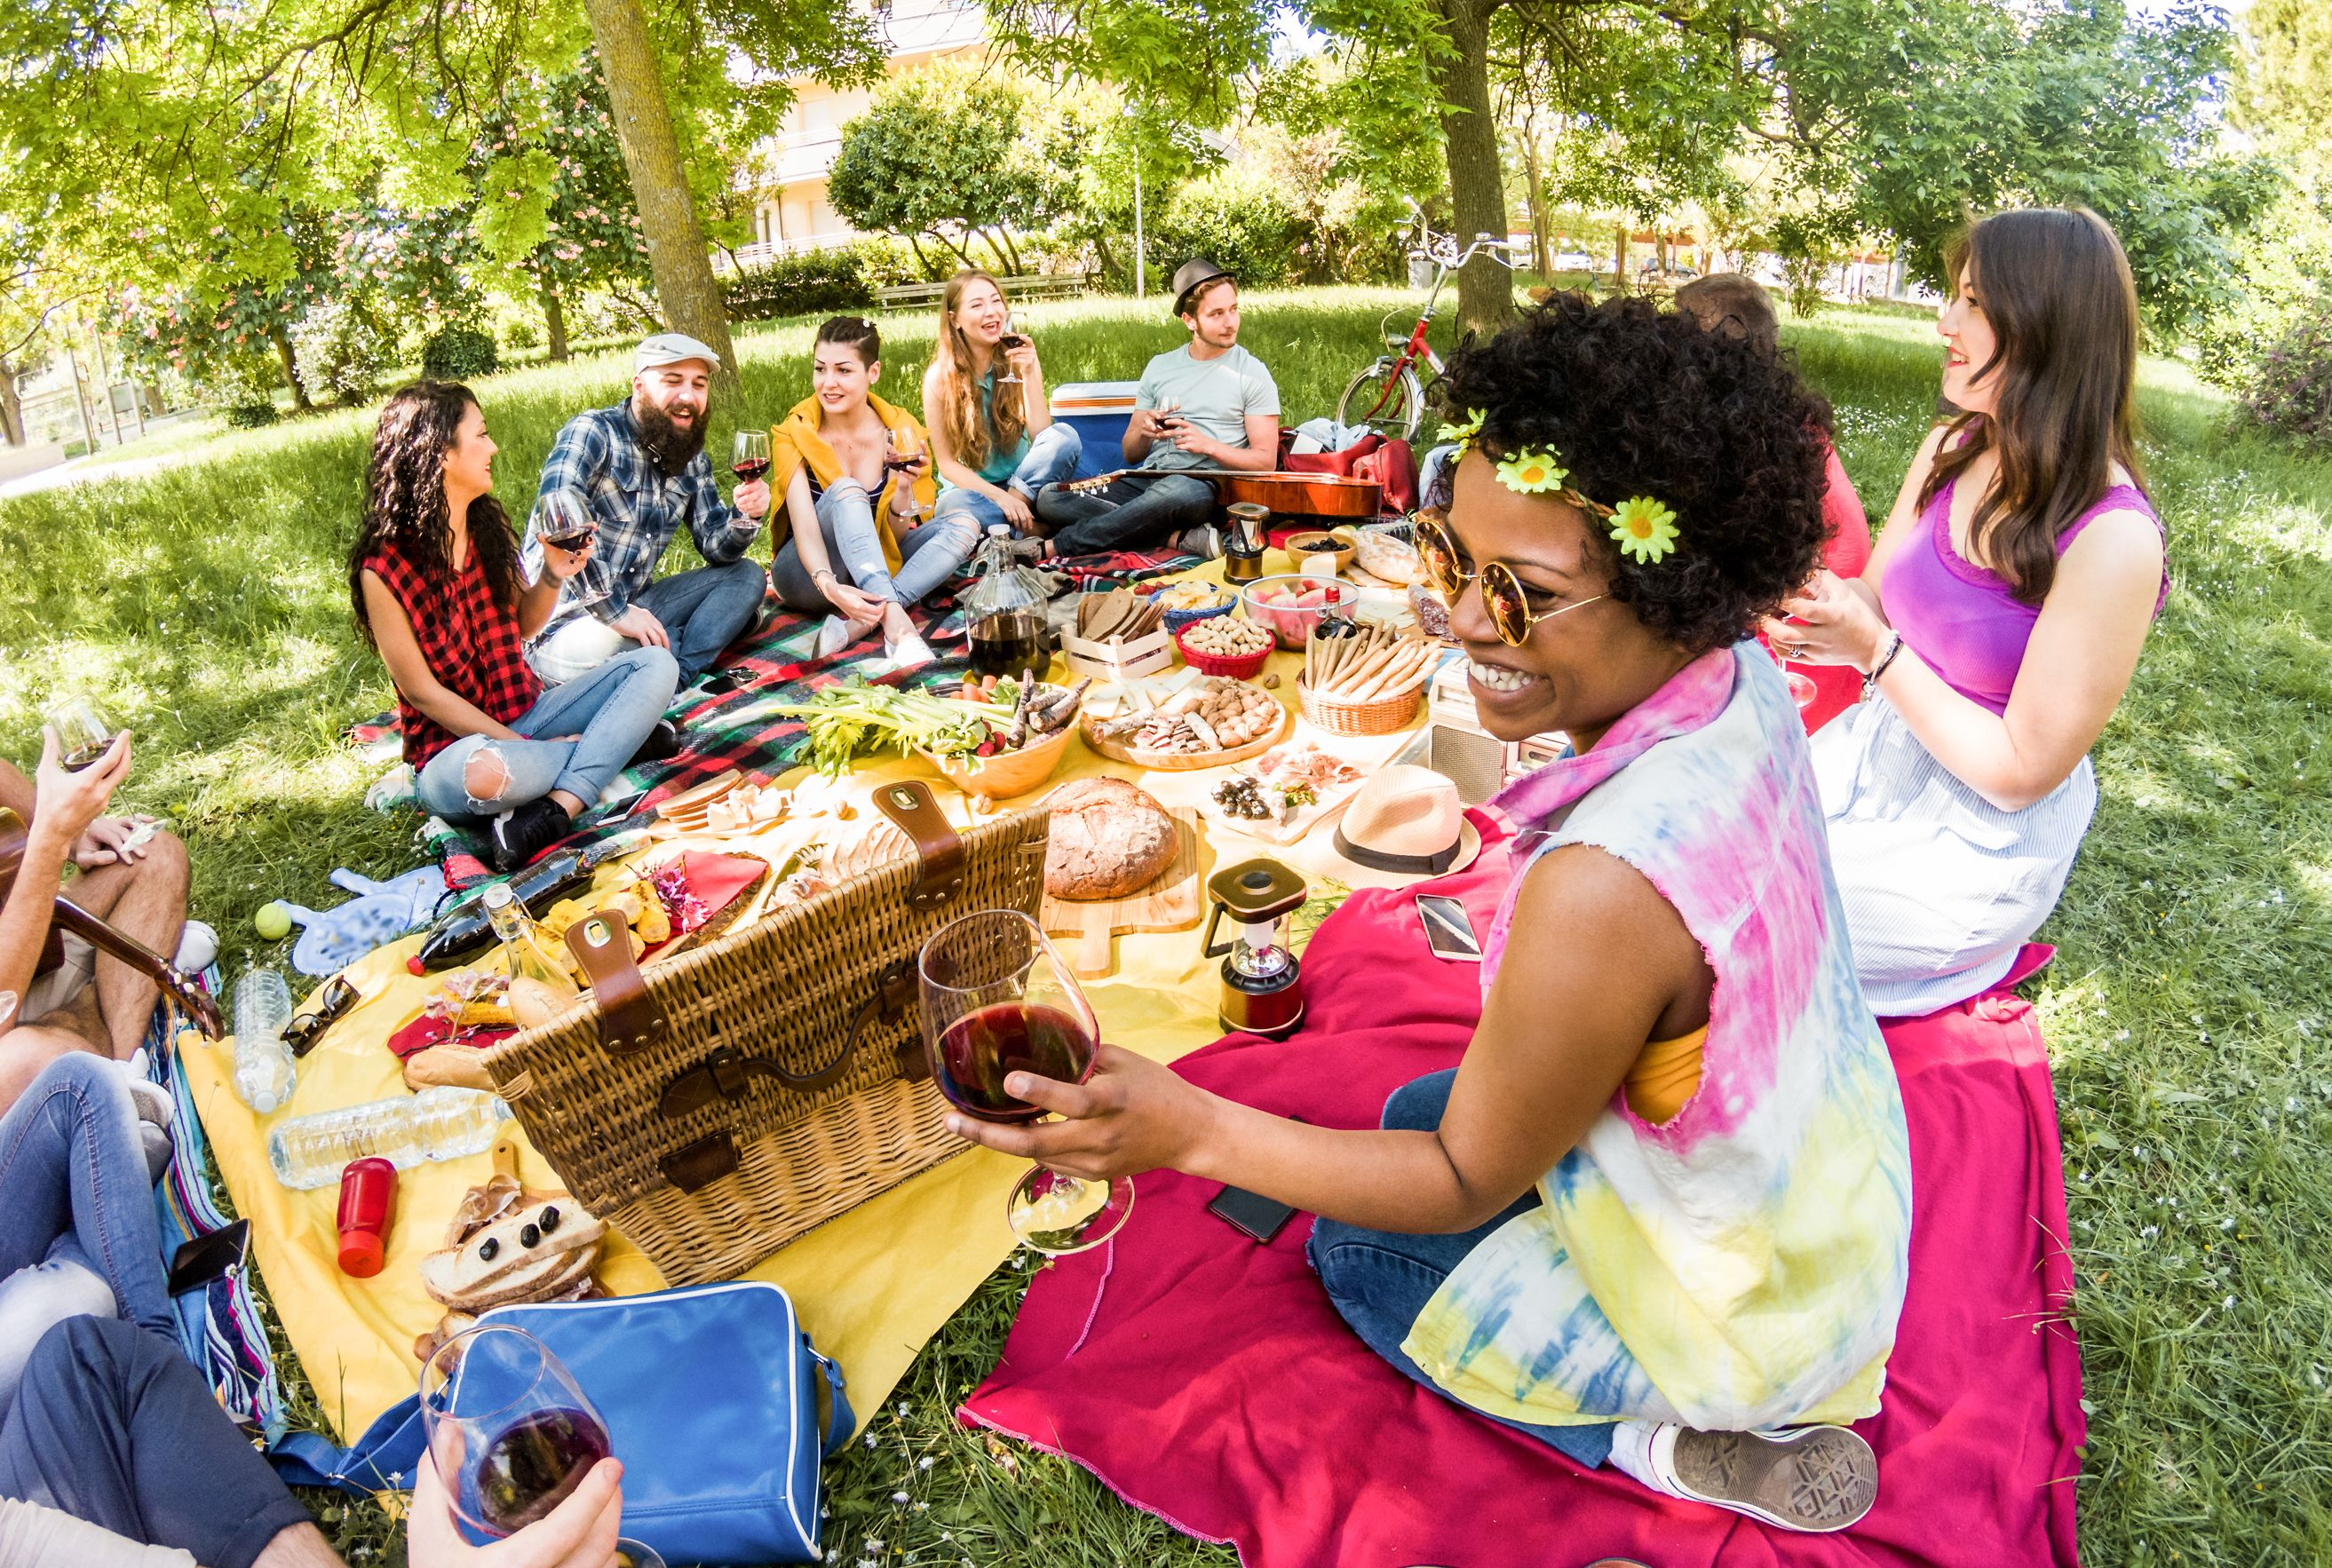 15 Essentials to Pack for Any Picnic | Mental Floss